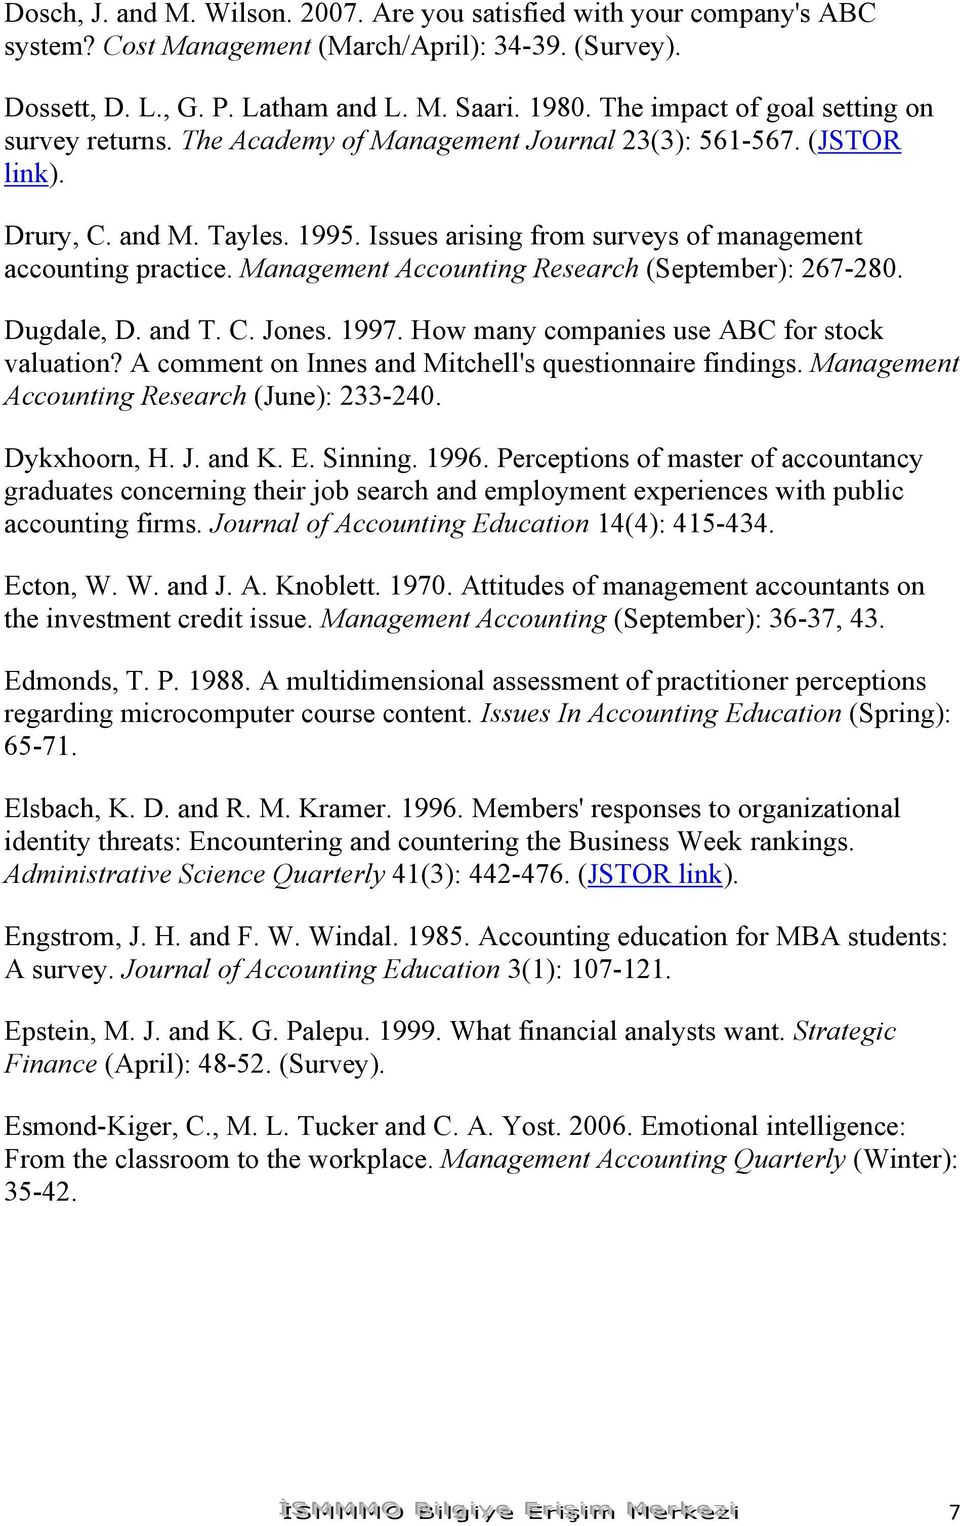 Issues arising from surveys of management accounting practice. Management Accounting Research (September): 267-280. Dugdale, D. and T. C. Jones. 1997. How many companies use ABC for stock valuation?